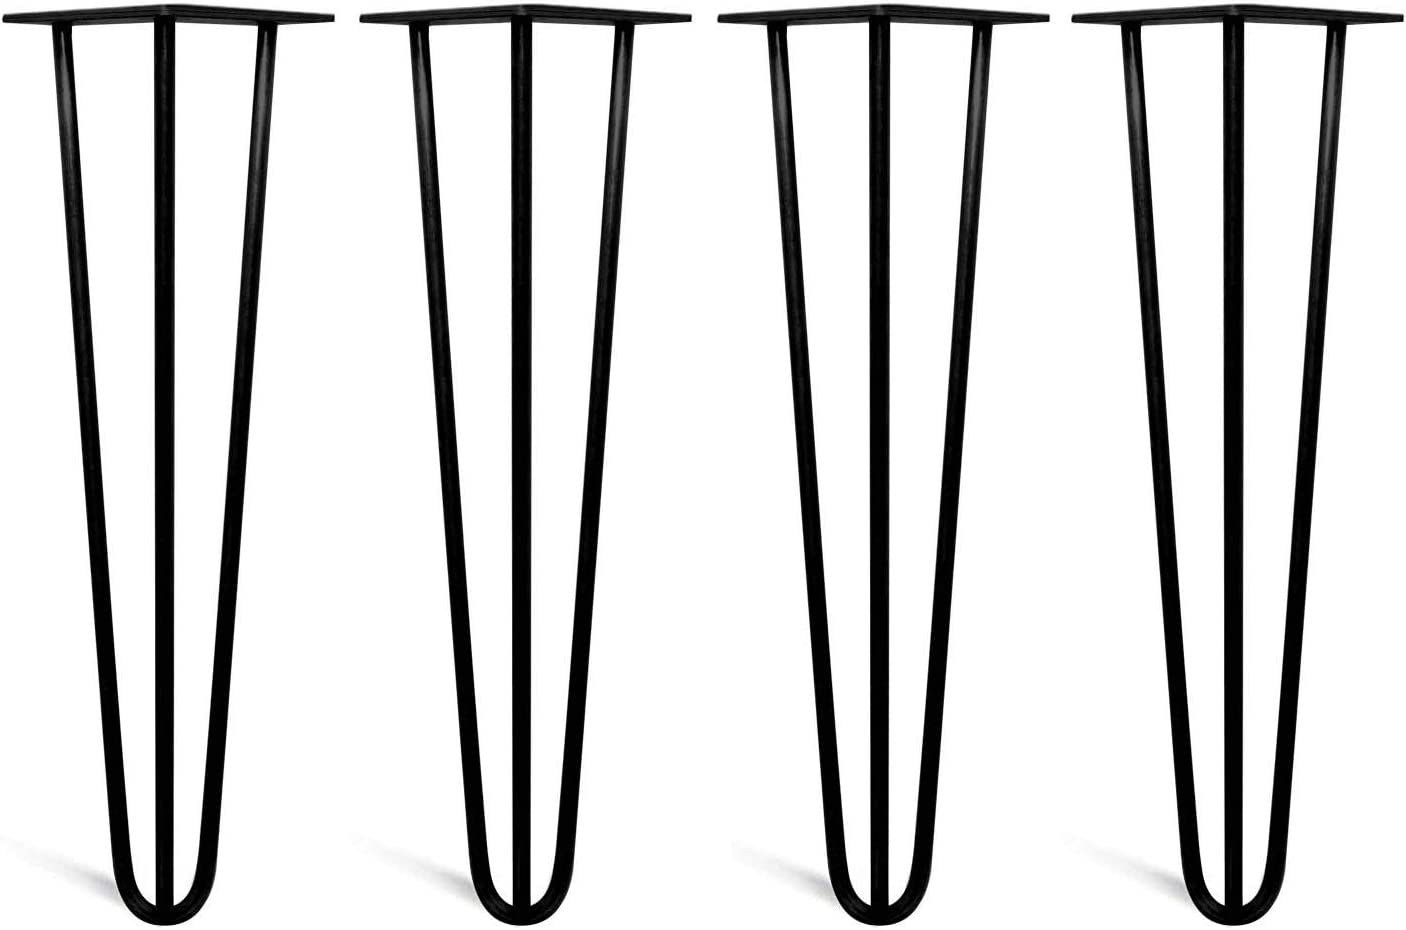 Set of 4 Hairpin Legs with Floor Protector Feet /& Screws,Strong /& Durable Design